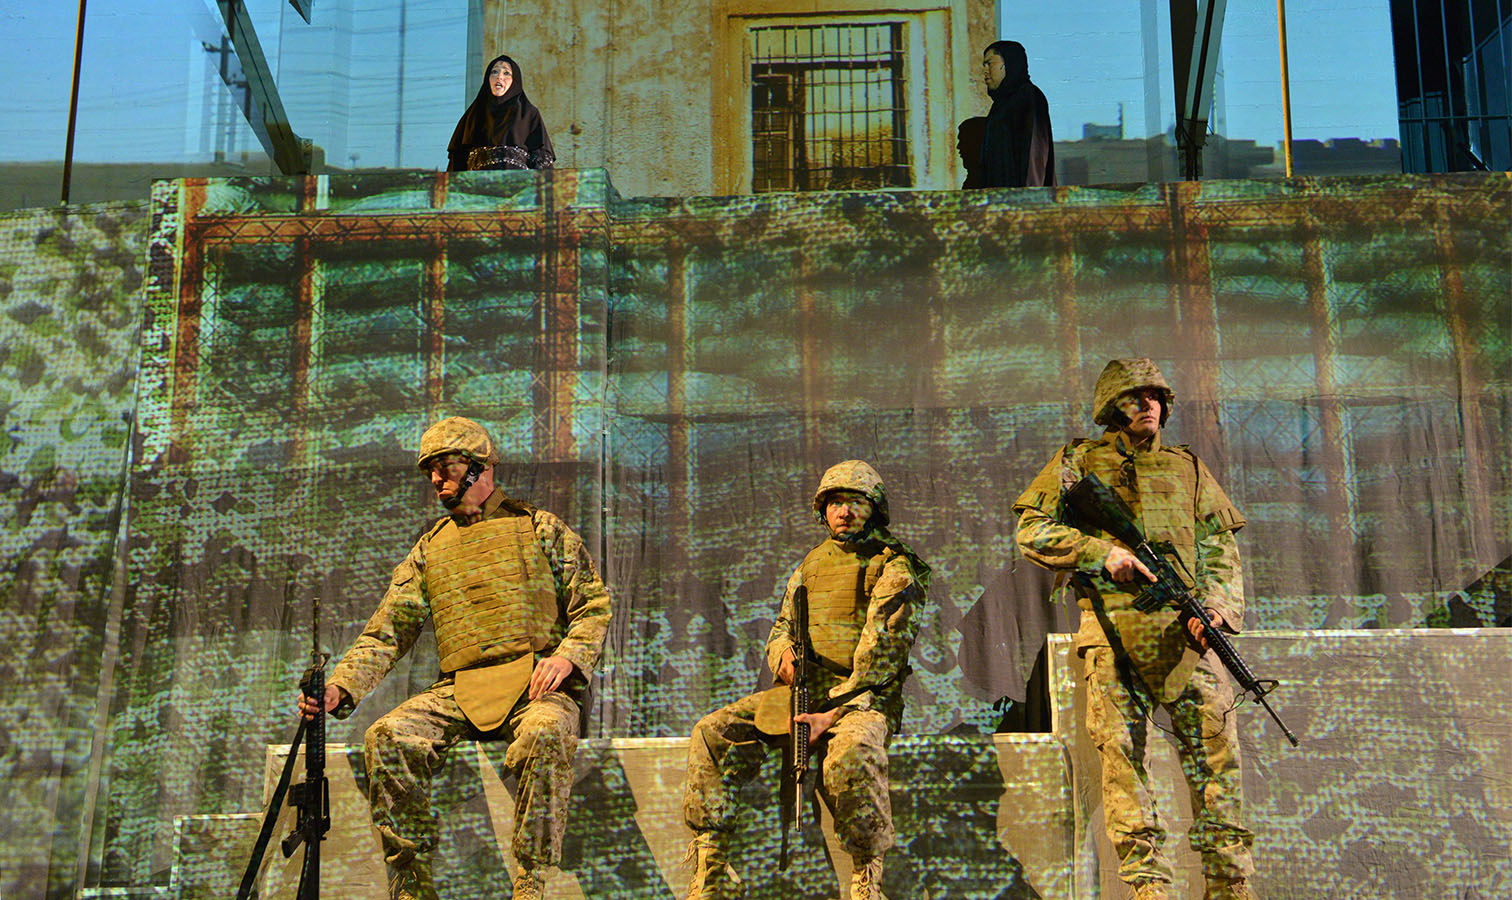 Fallujah, the opera (photo: Keith Ian Polakoff/Long Beach Opera)